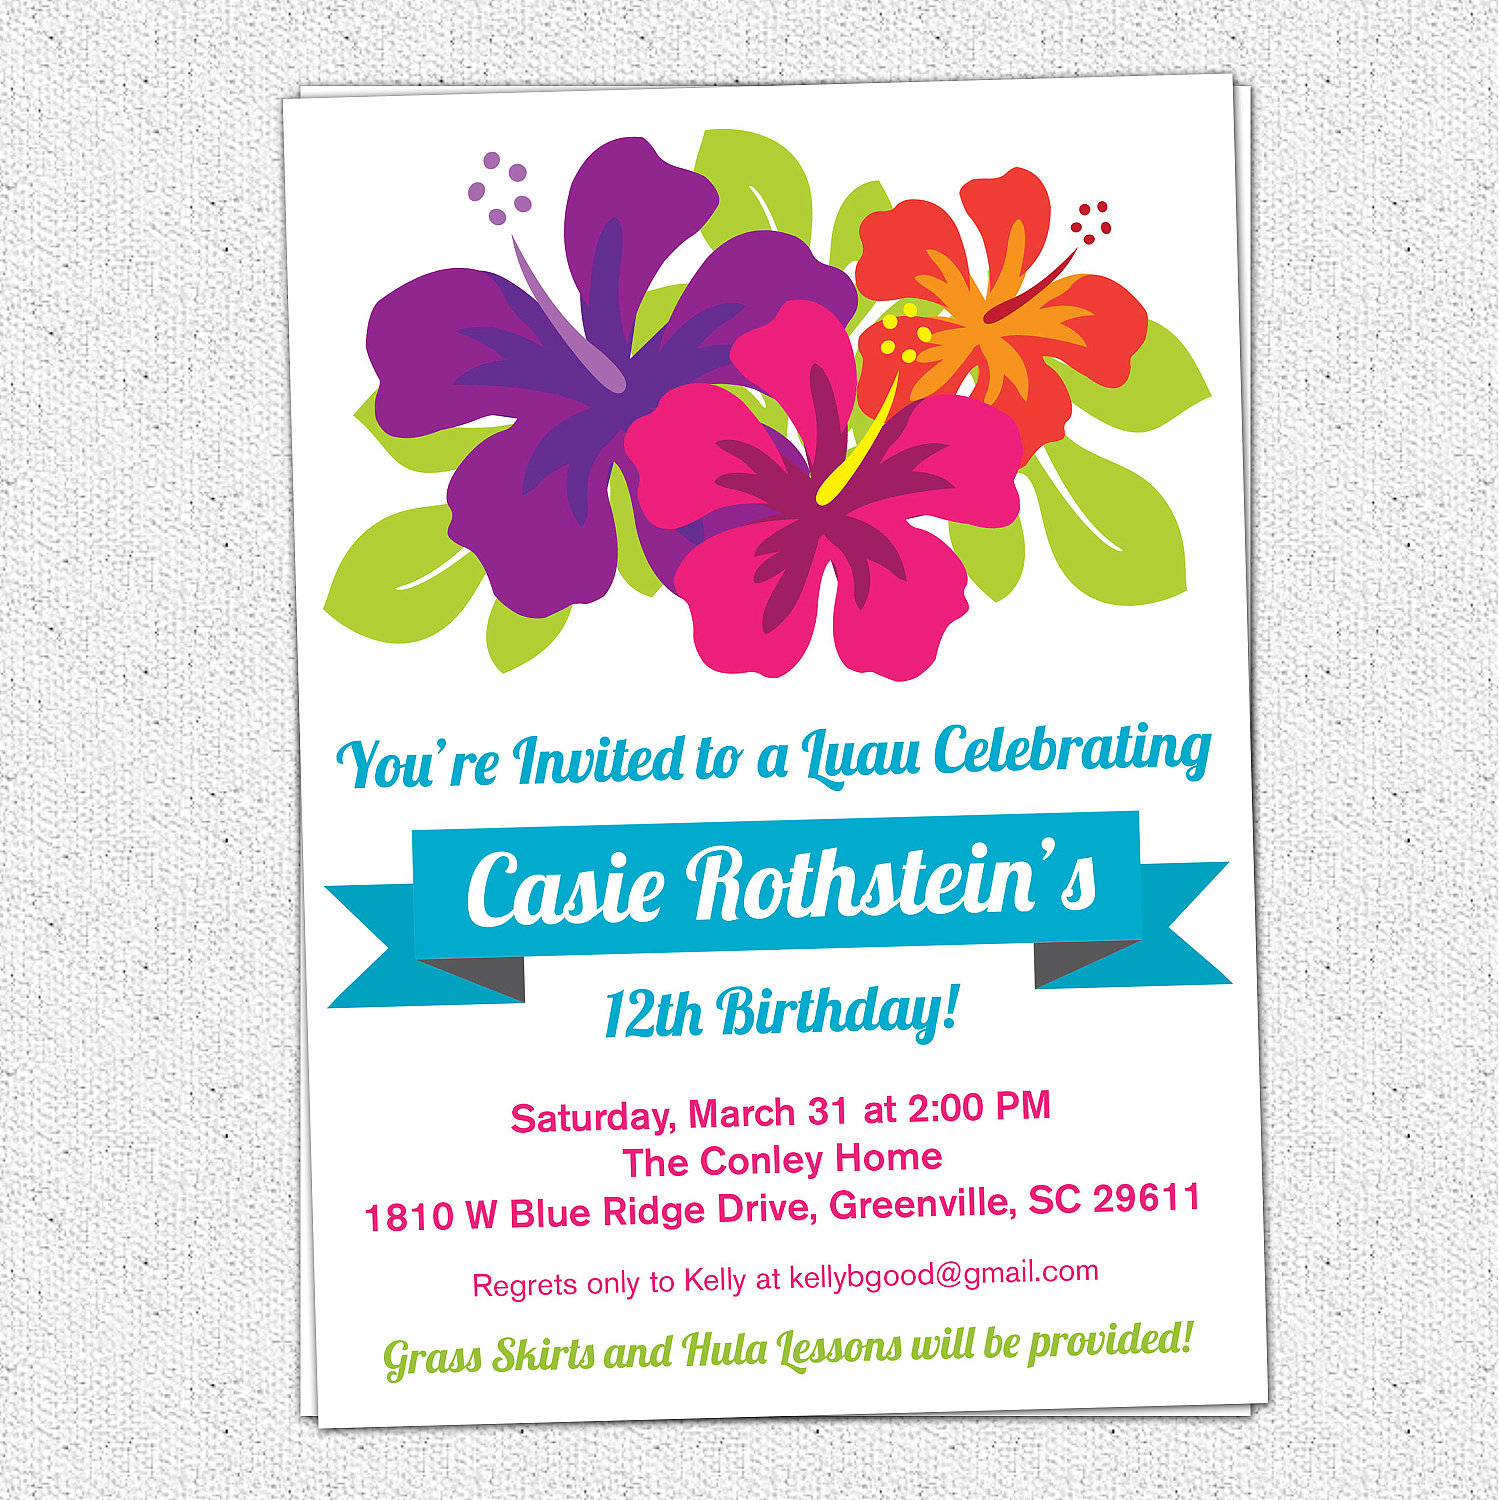 Luau Birthday Invitations Summer Party Hibiscus Flowers – Flower Party Invitations